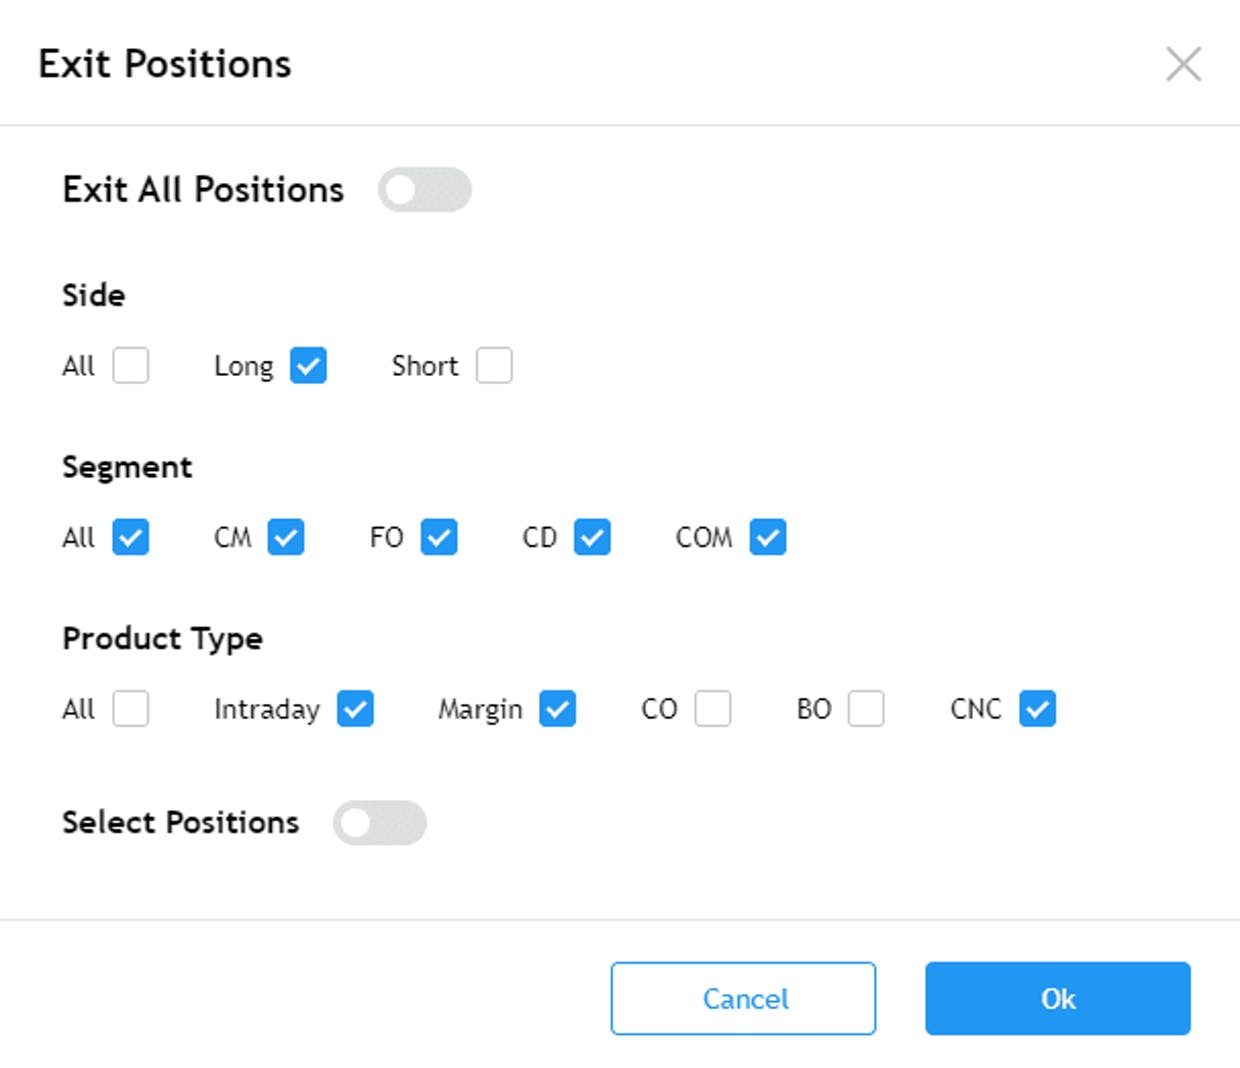 Square off multiple open positions across segments, product types and long/short trades.